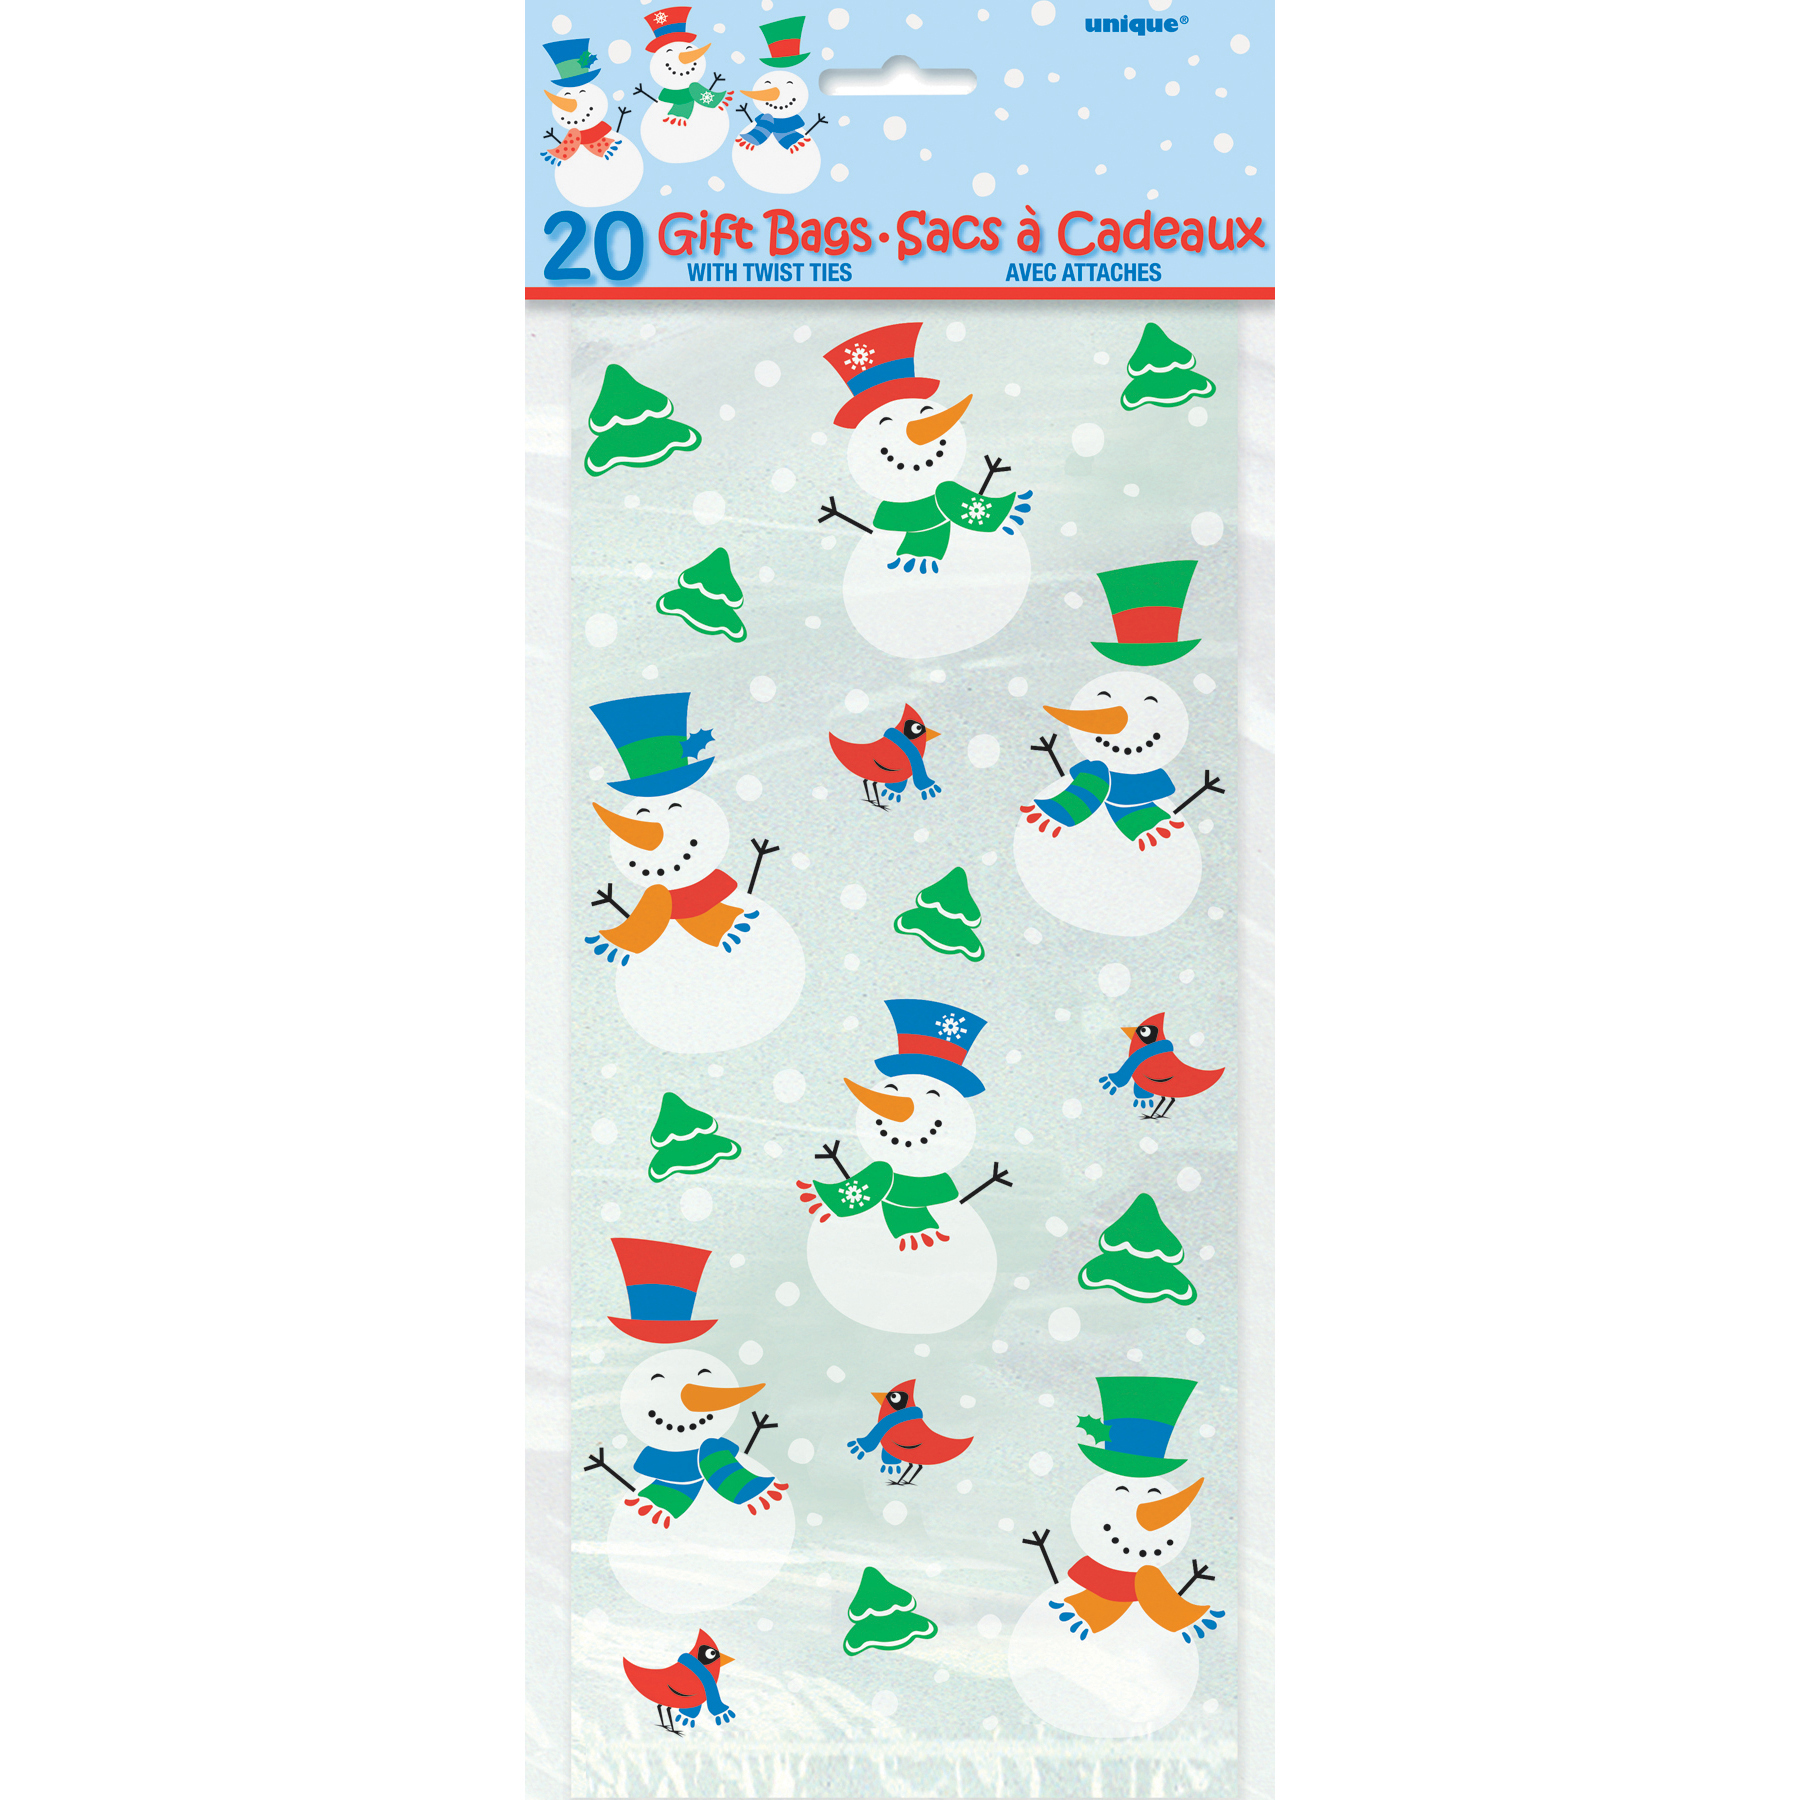 Snowman glee holiday cellophane bags ct